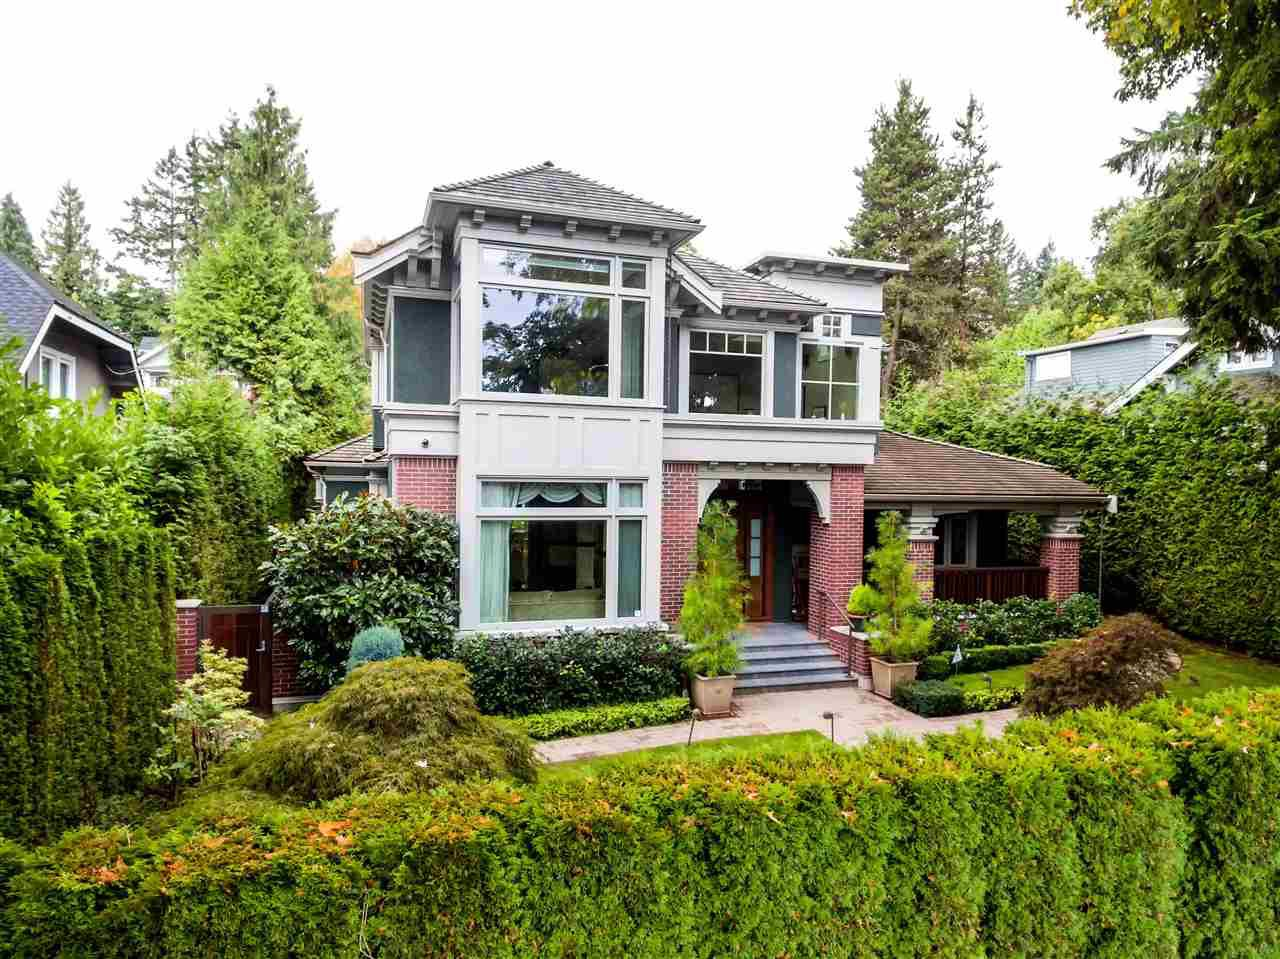 Main Photo:  in Vancouver: Point Grey House for sale (Vancouver West)  : MLS®# R2207956